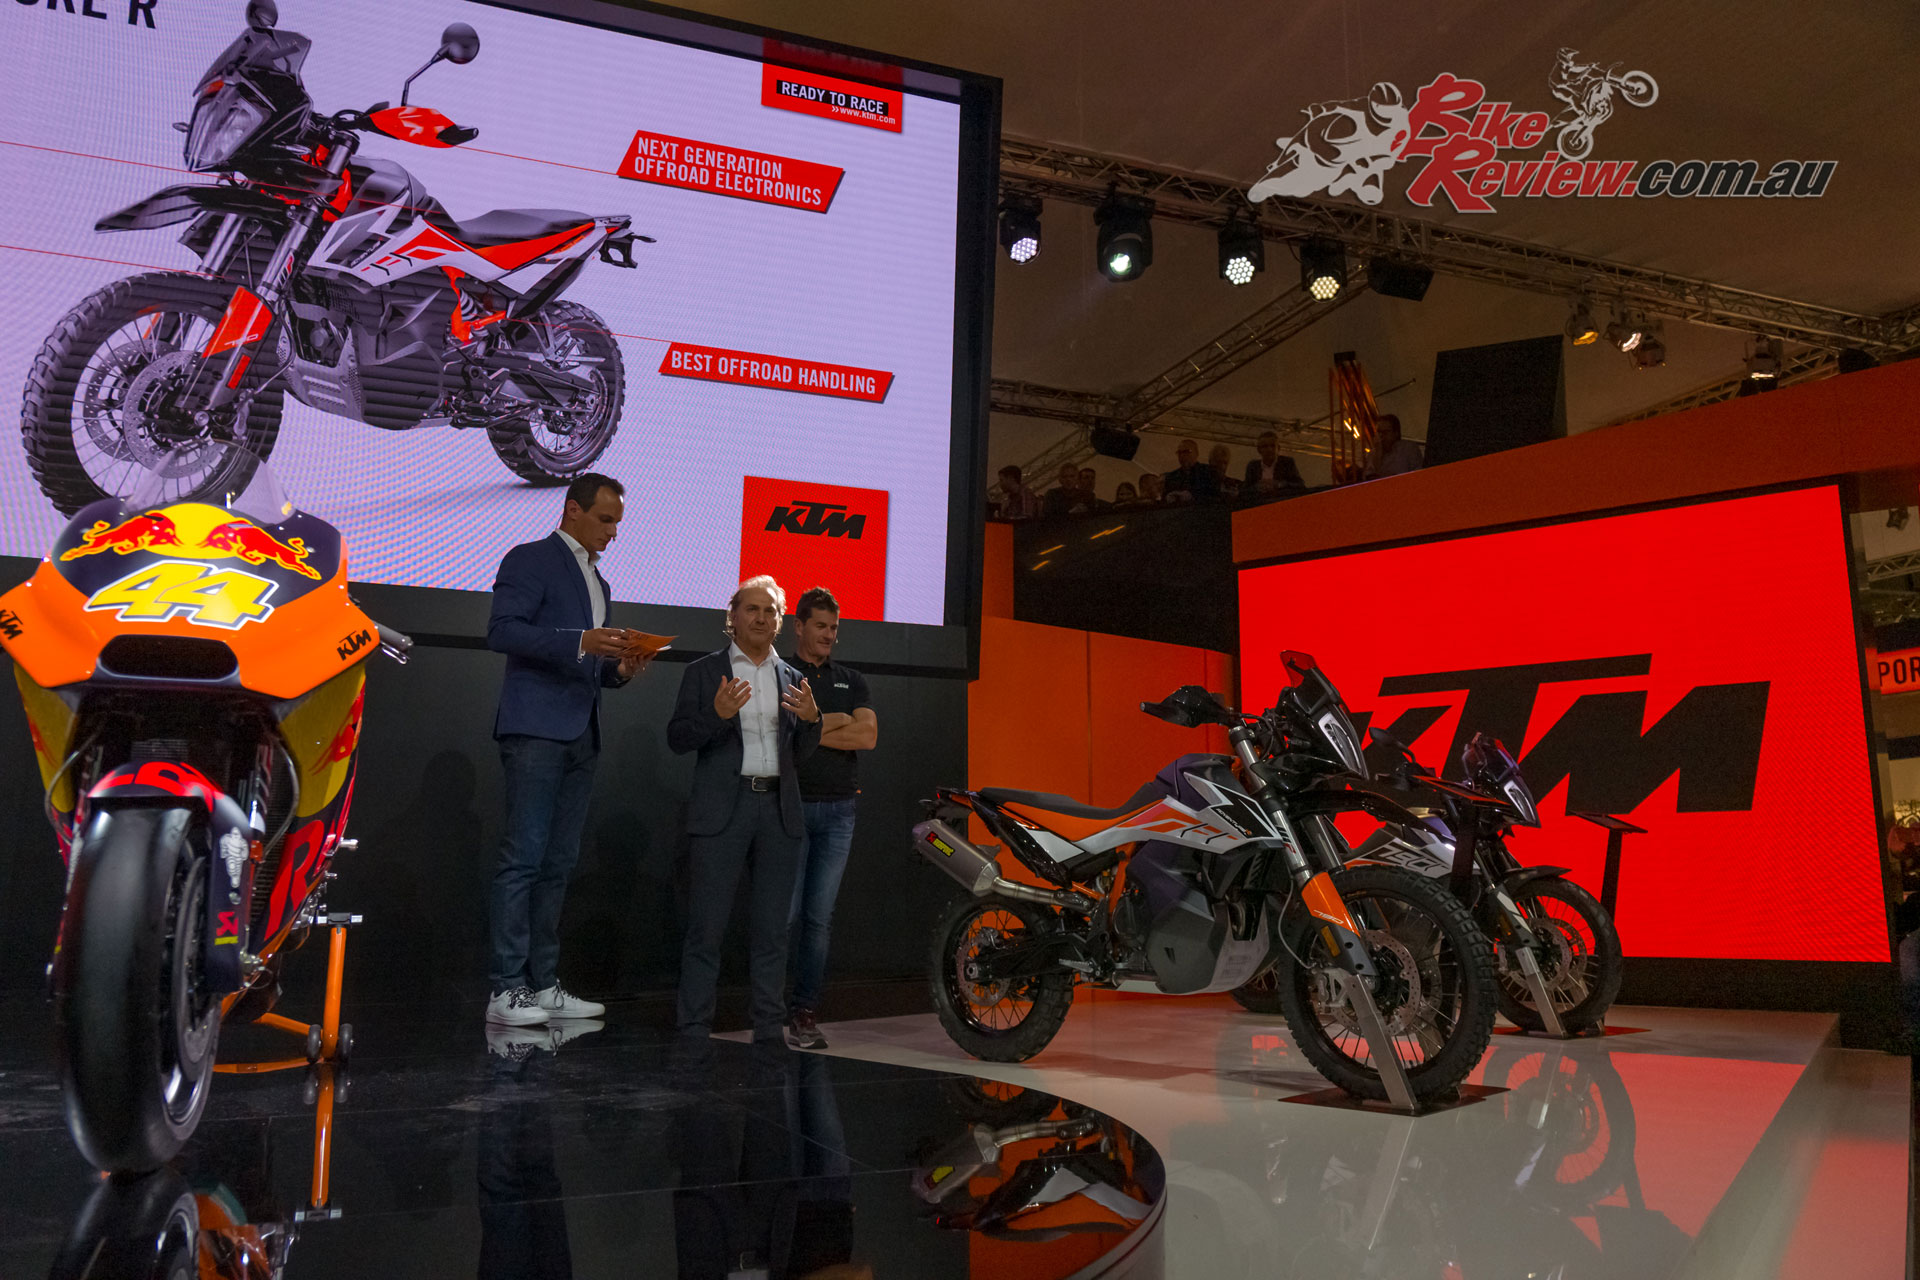 2019 KTM Adventure 790 R unveiled